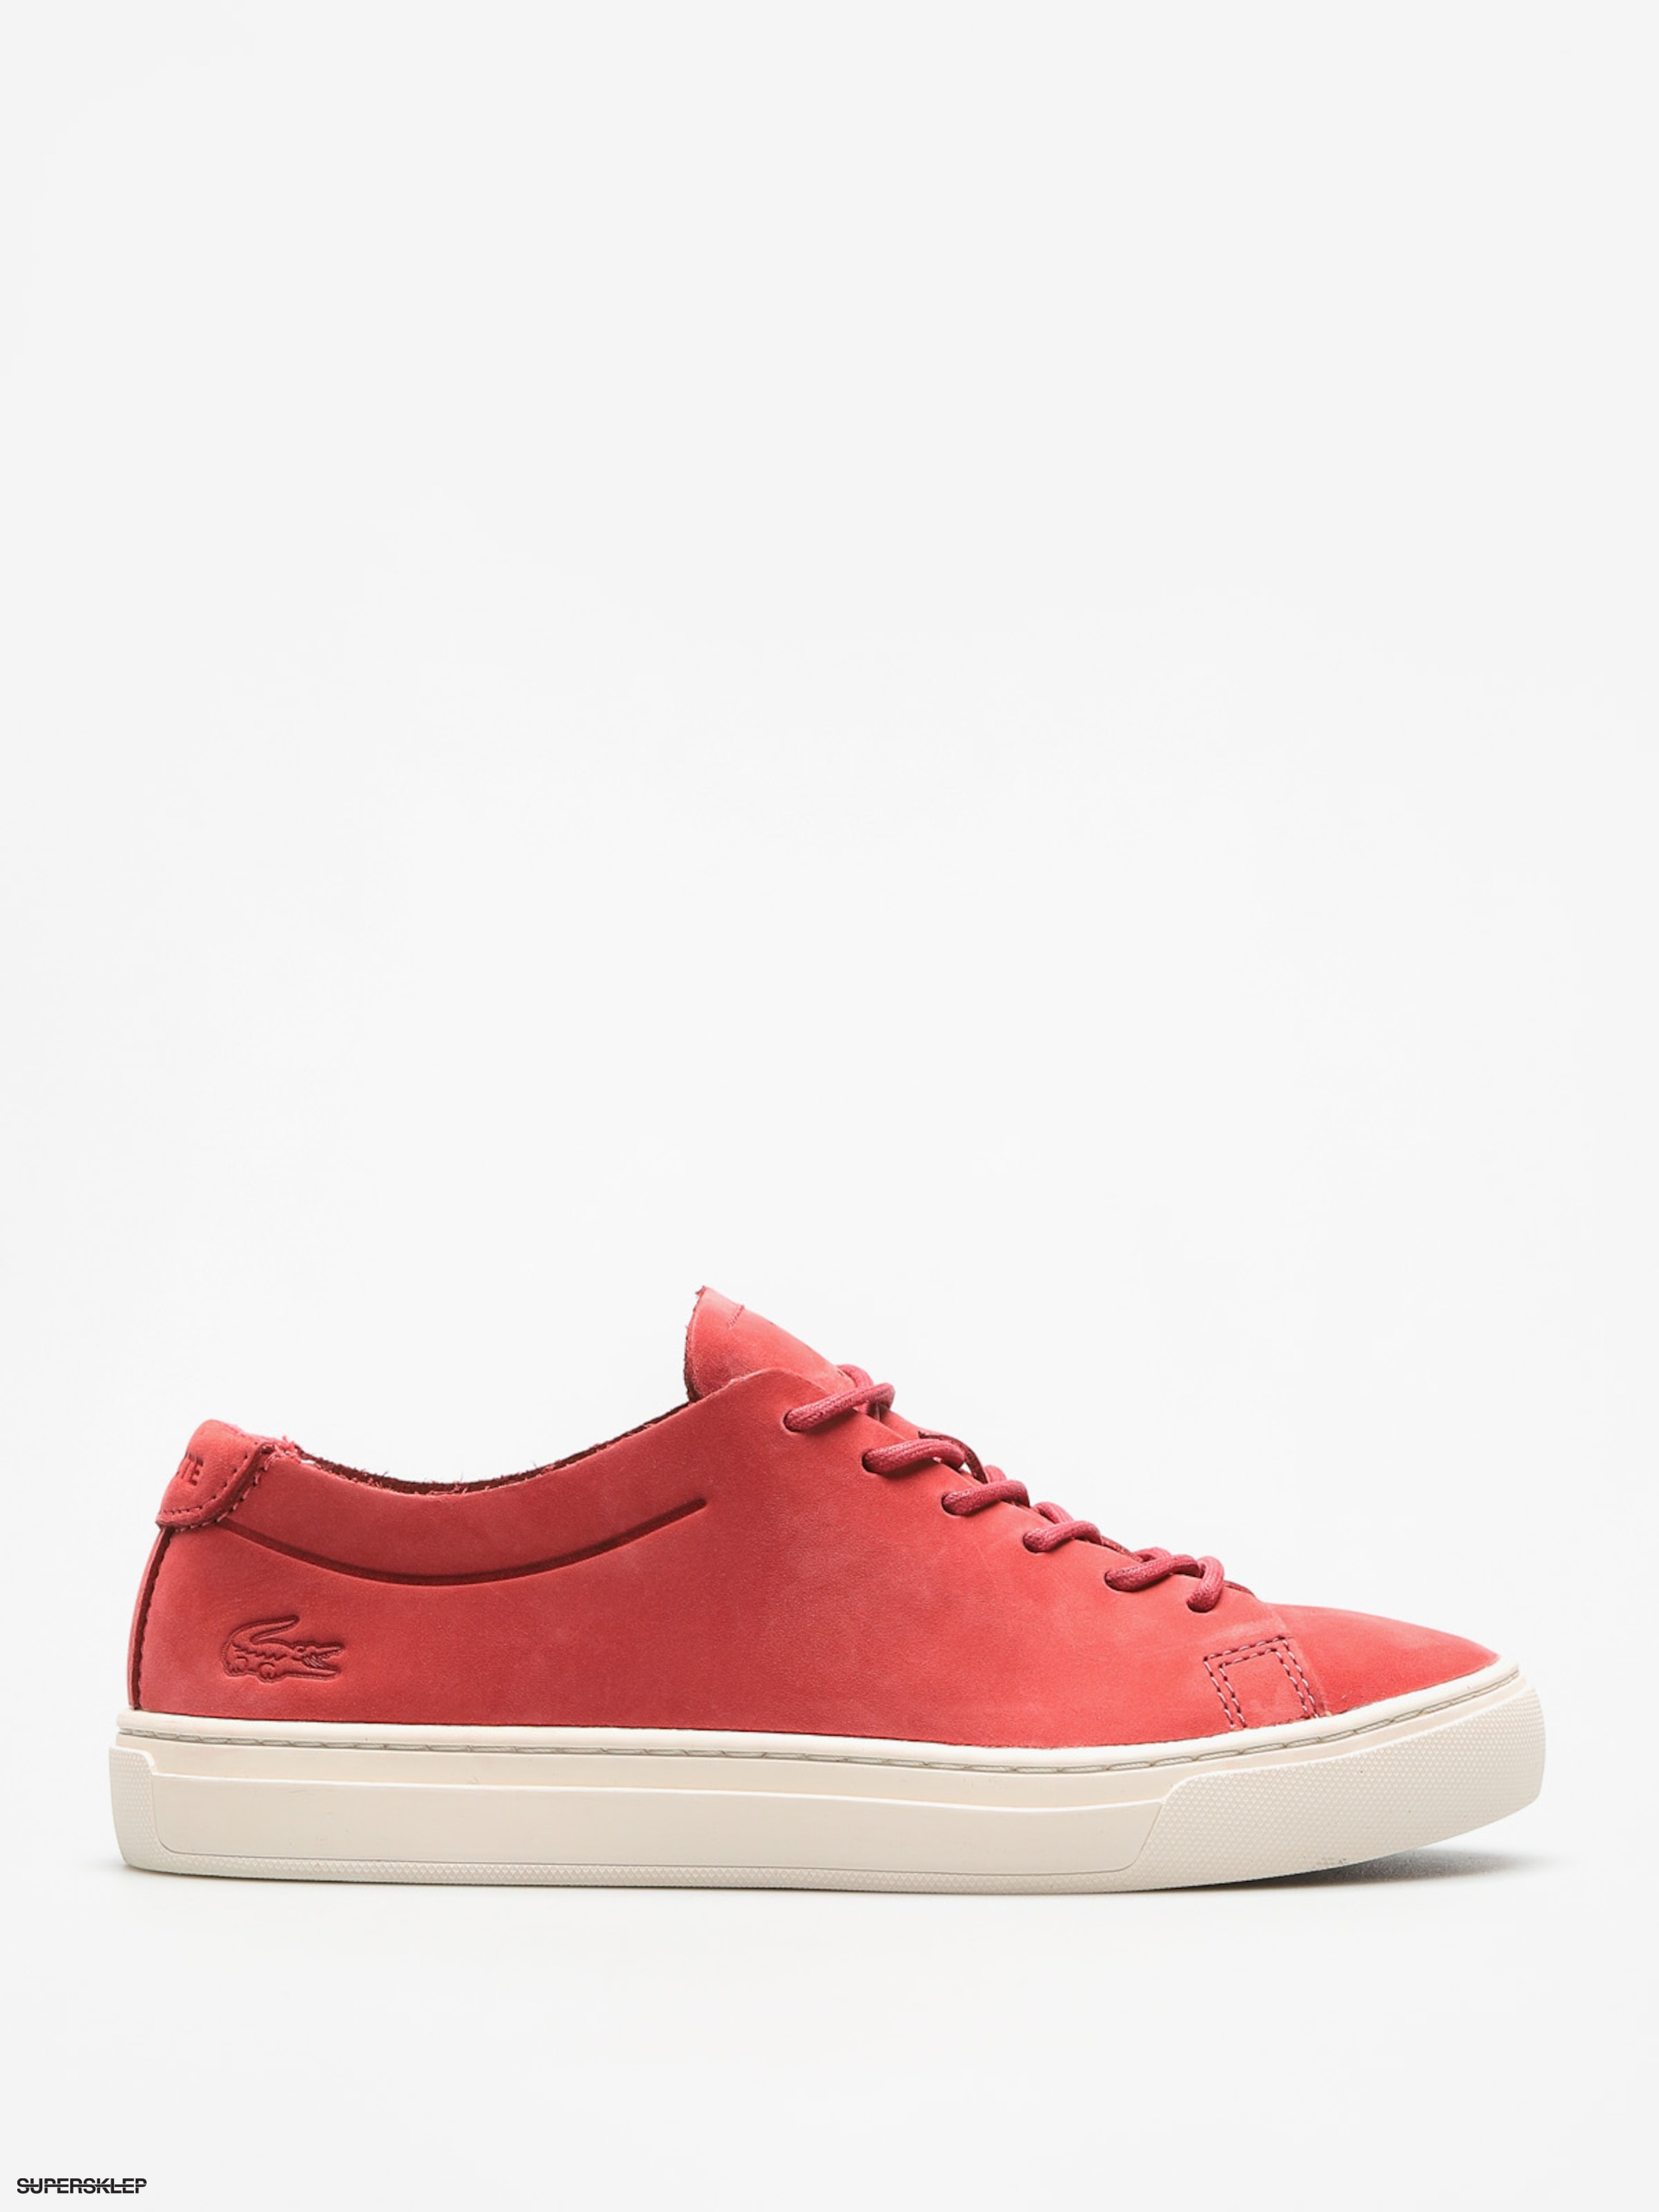 Boty Lacoste L 12 12 Unlined 118 3 Wmn (red off white) 6d138bb61d